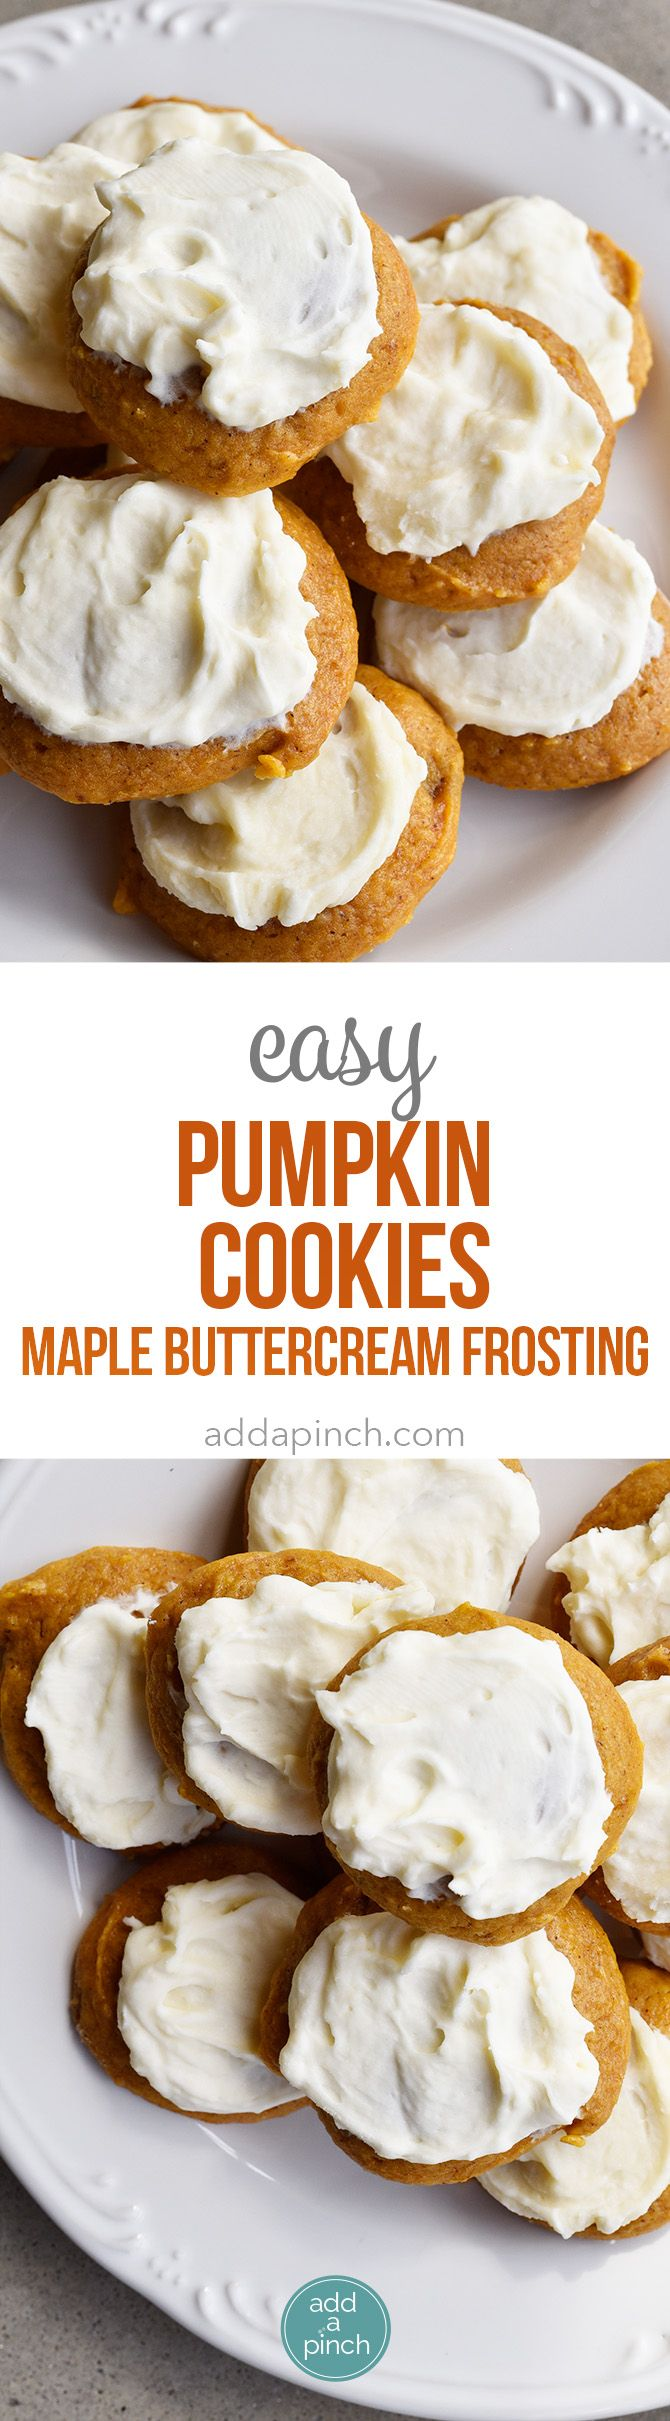 Pumpkin Cookies Recipe with Maple Buttercream Frosting by Add A Pinch - can be made ahead and frozen